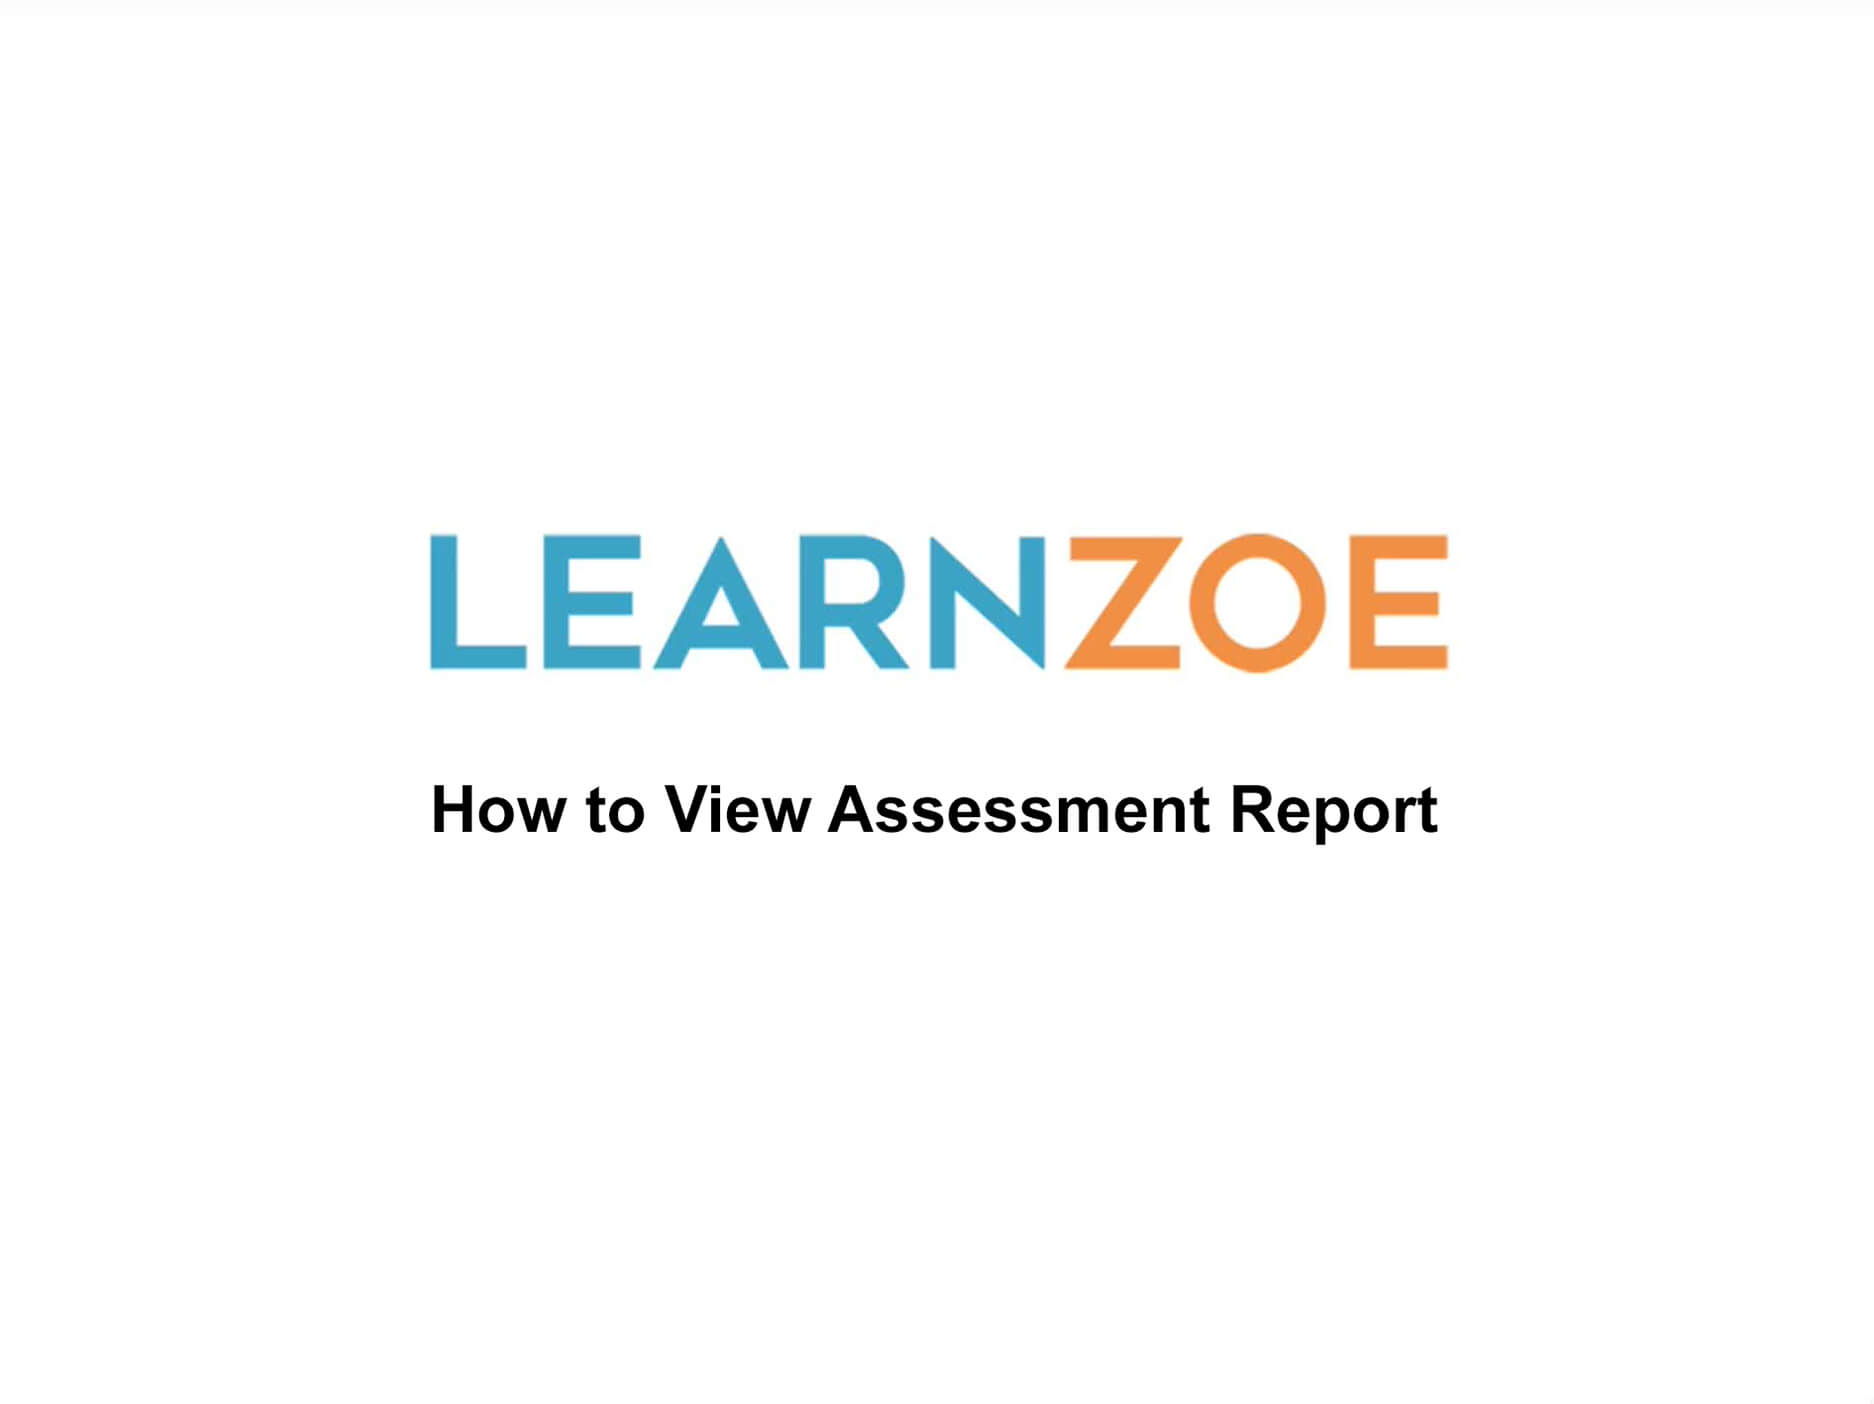 View Assessment Report Video Thumbnail